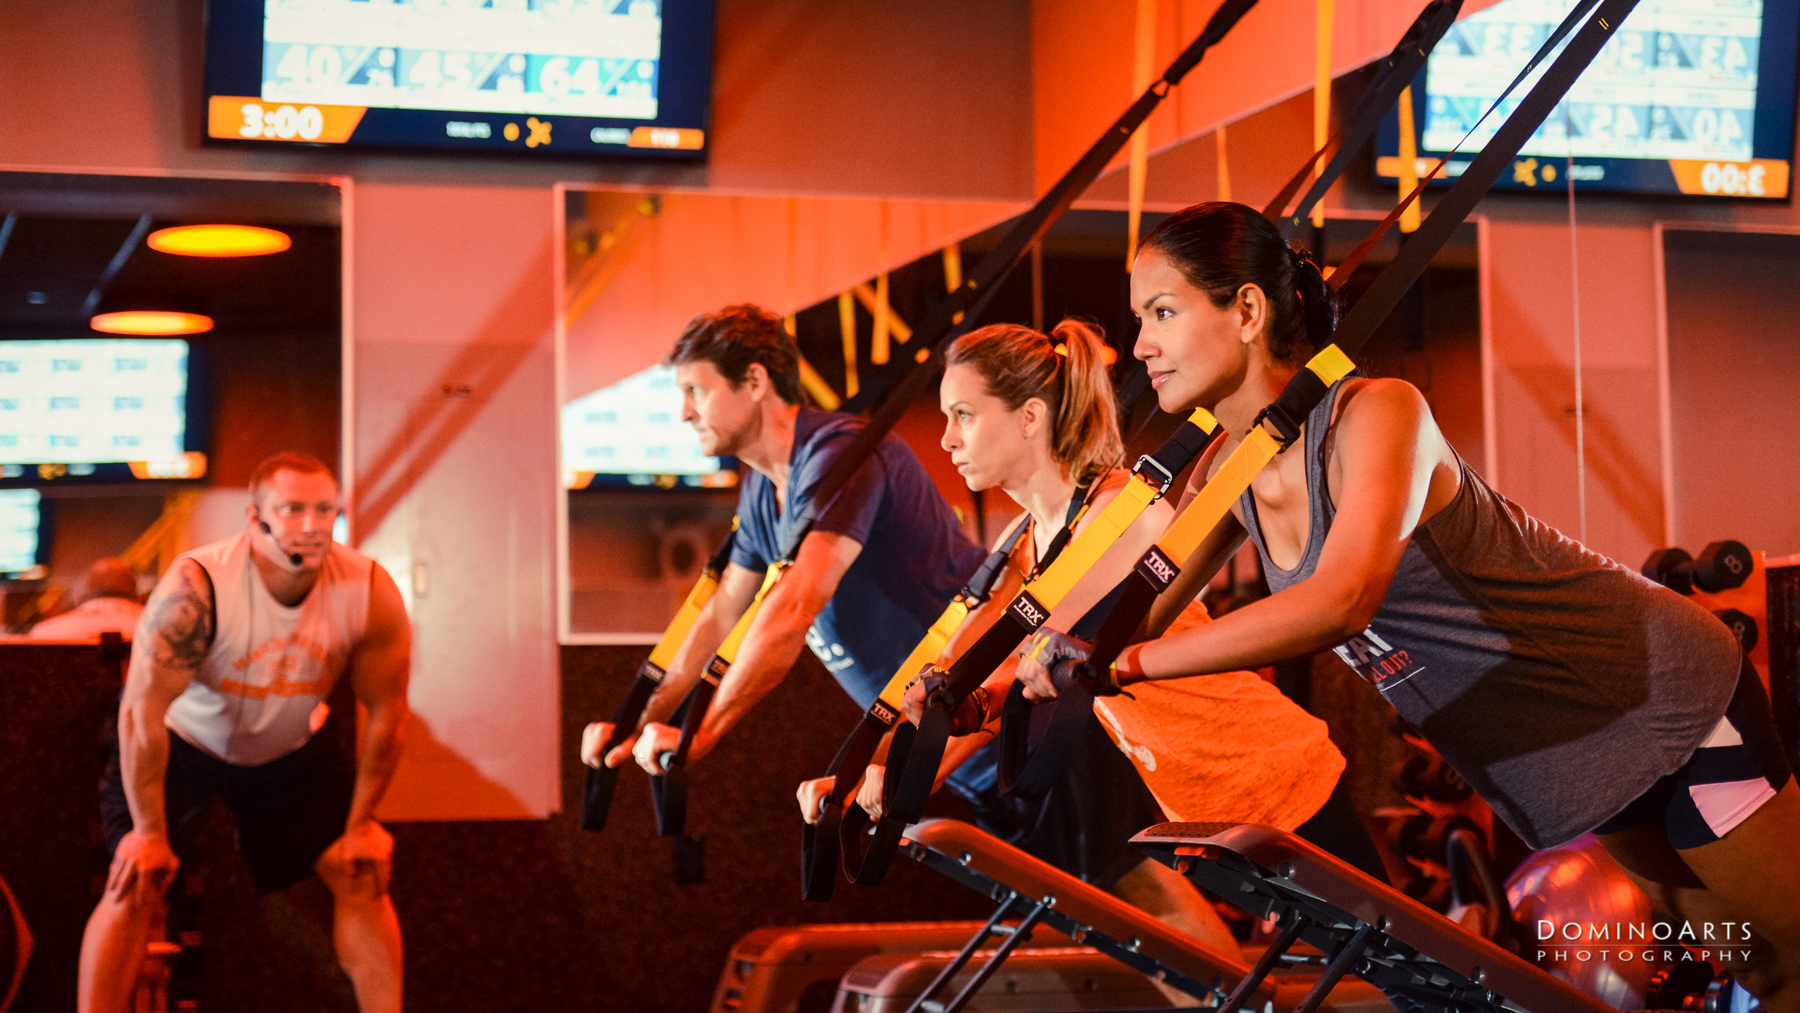 PR photography by Domino Arts at Orange Theory Fitness